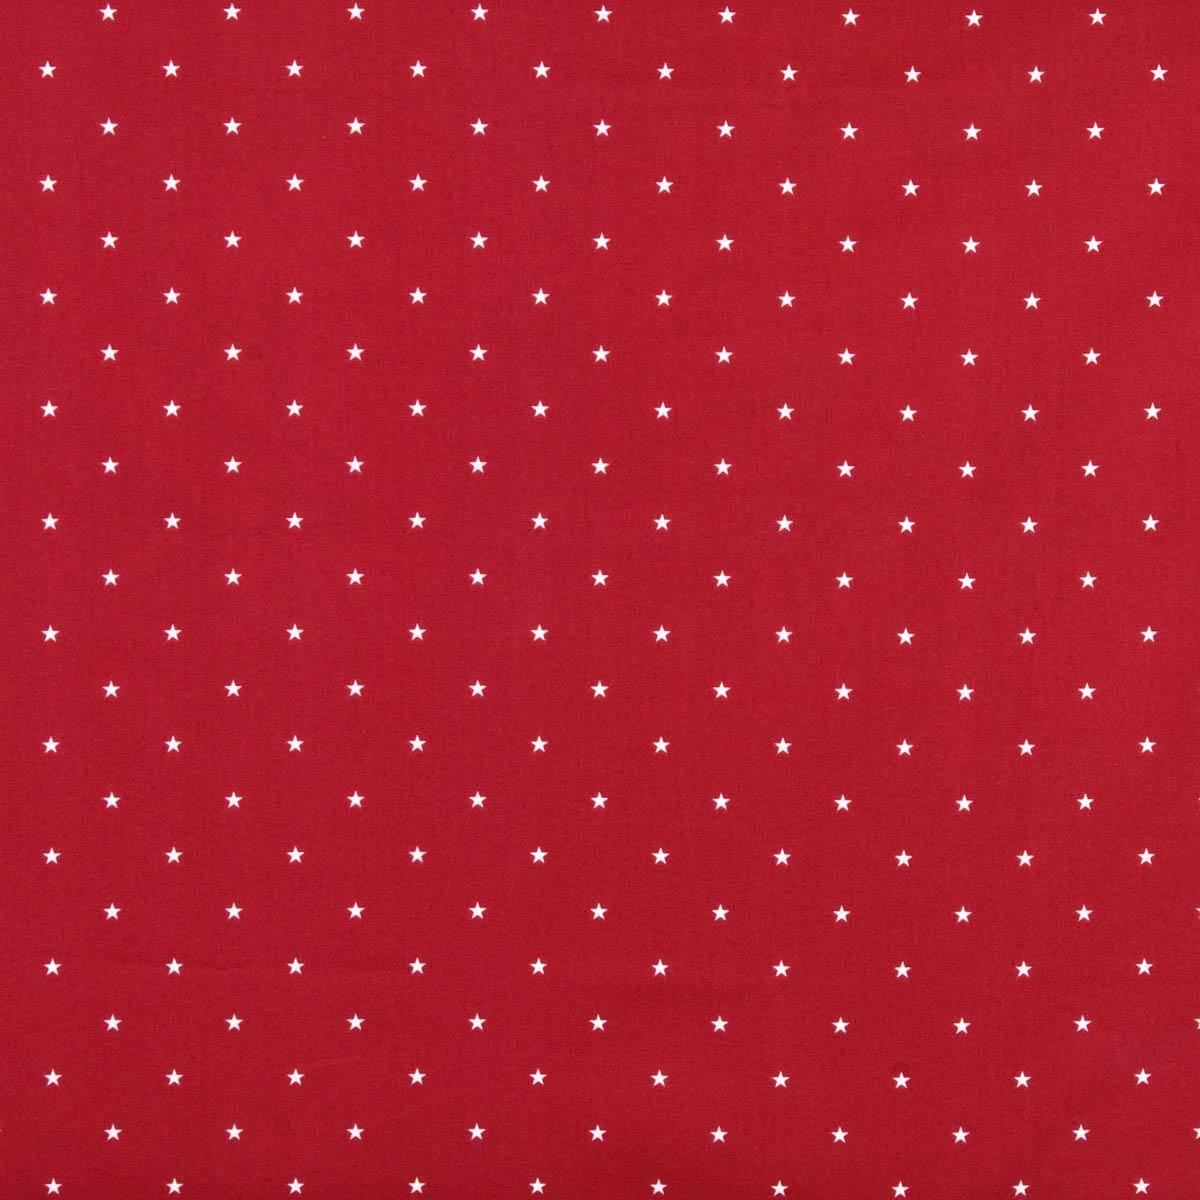 Etoile Curtain Fabric Red